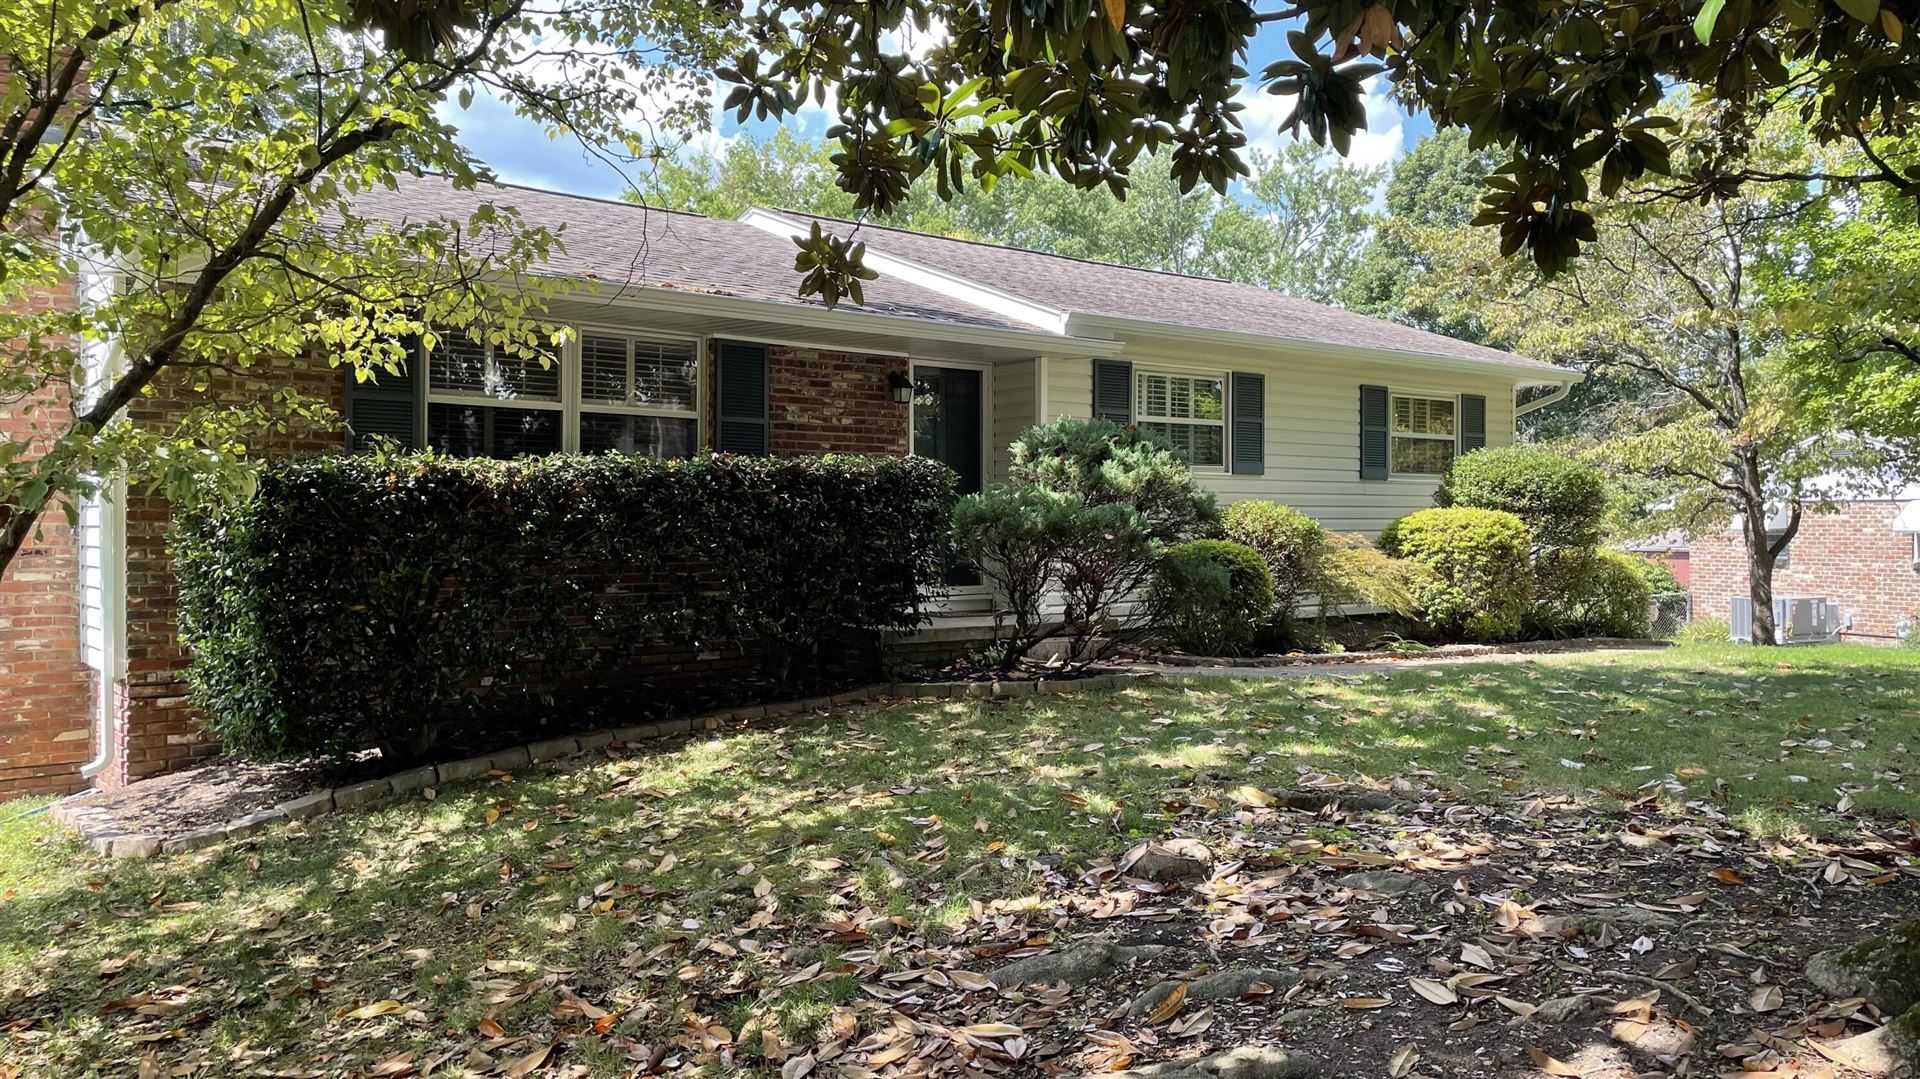 Photo of 7937 Stratton Drive, Knoxville, TN 37919 (MLS # 1162303)